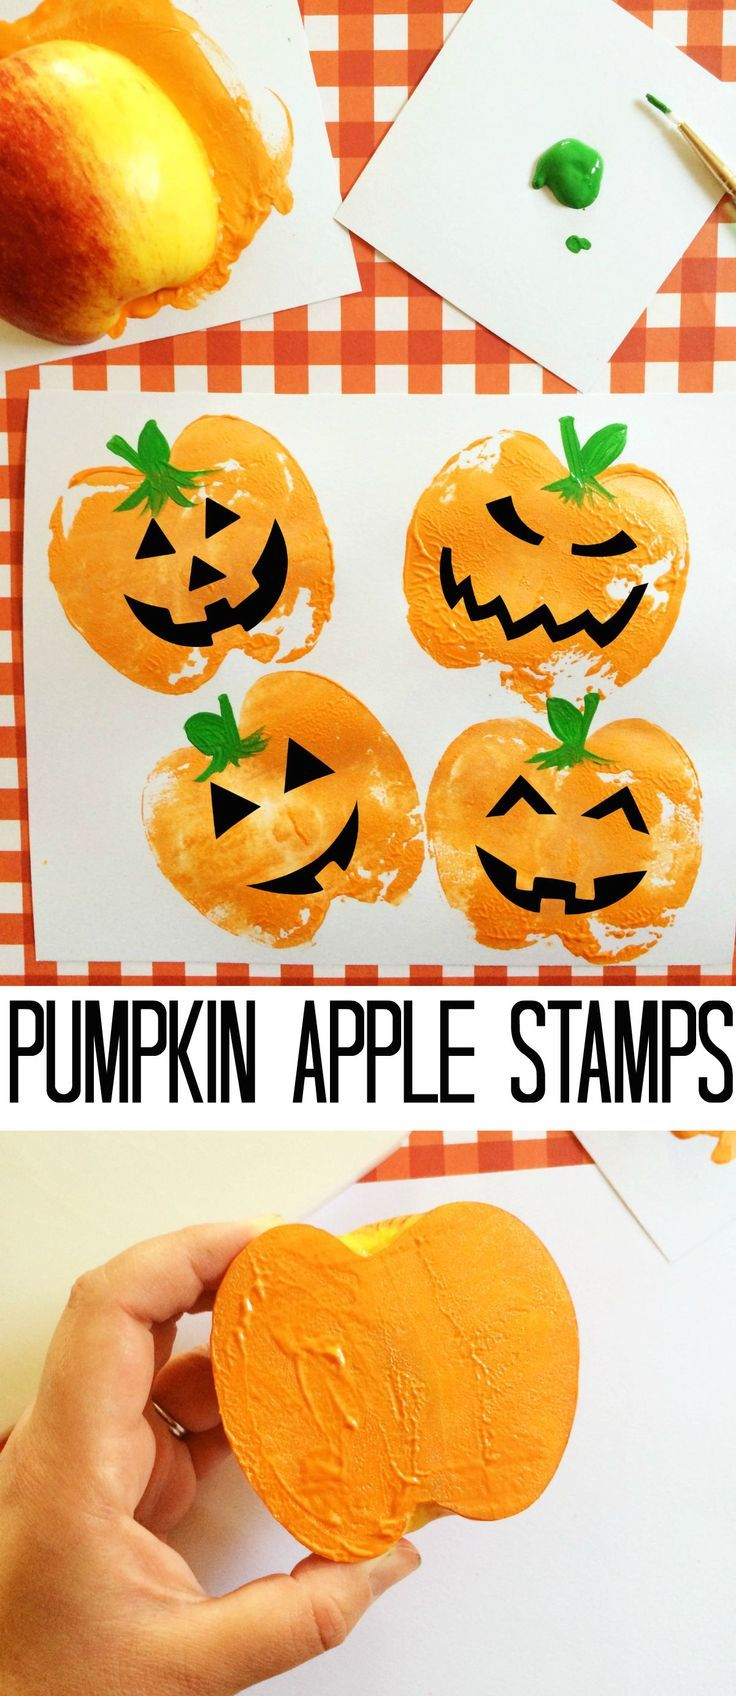 These Pumpkin Apple Stamps are a fun way to celebrate the coming autumn season! This is a kids craft that will keep children busy creating works of art! Kid's crafts